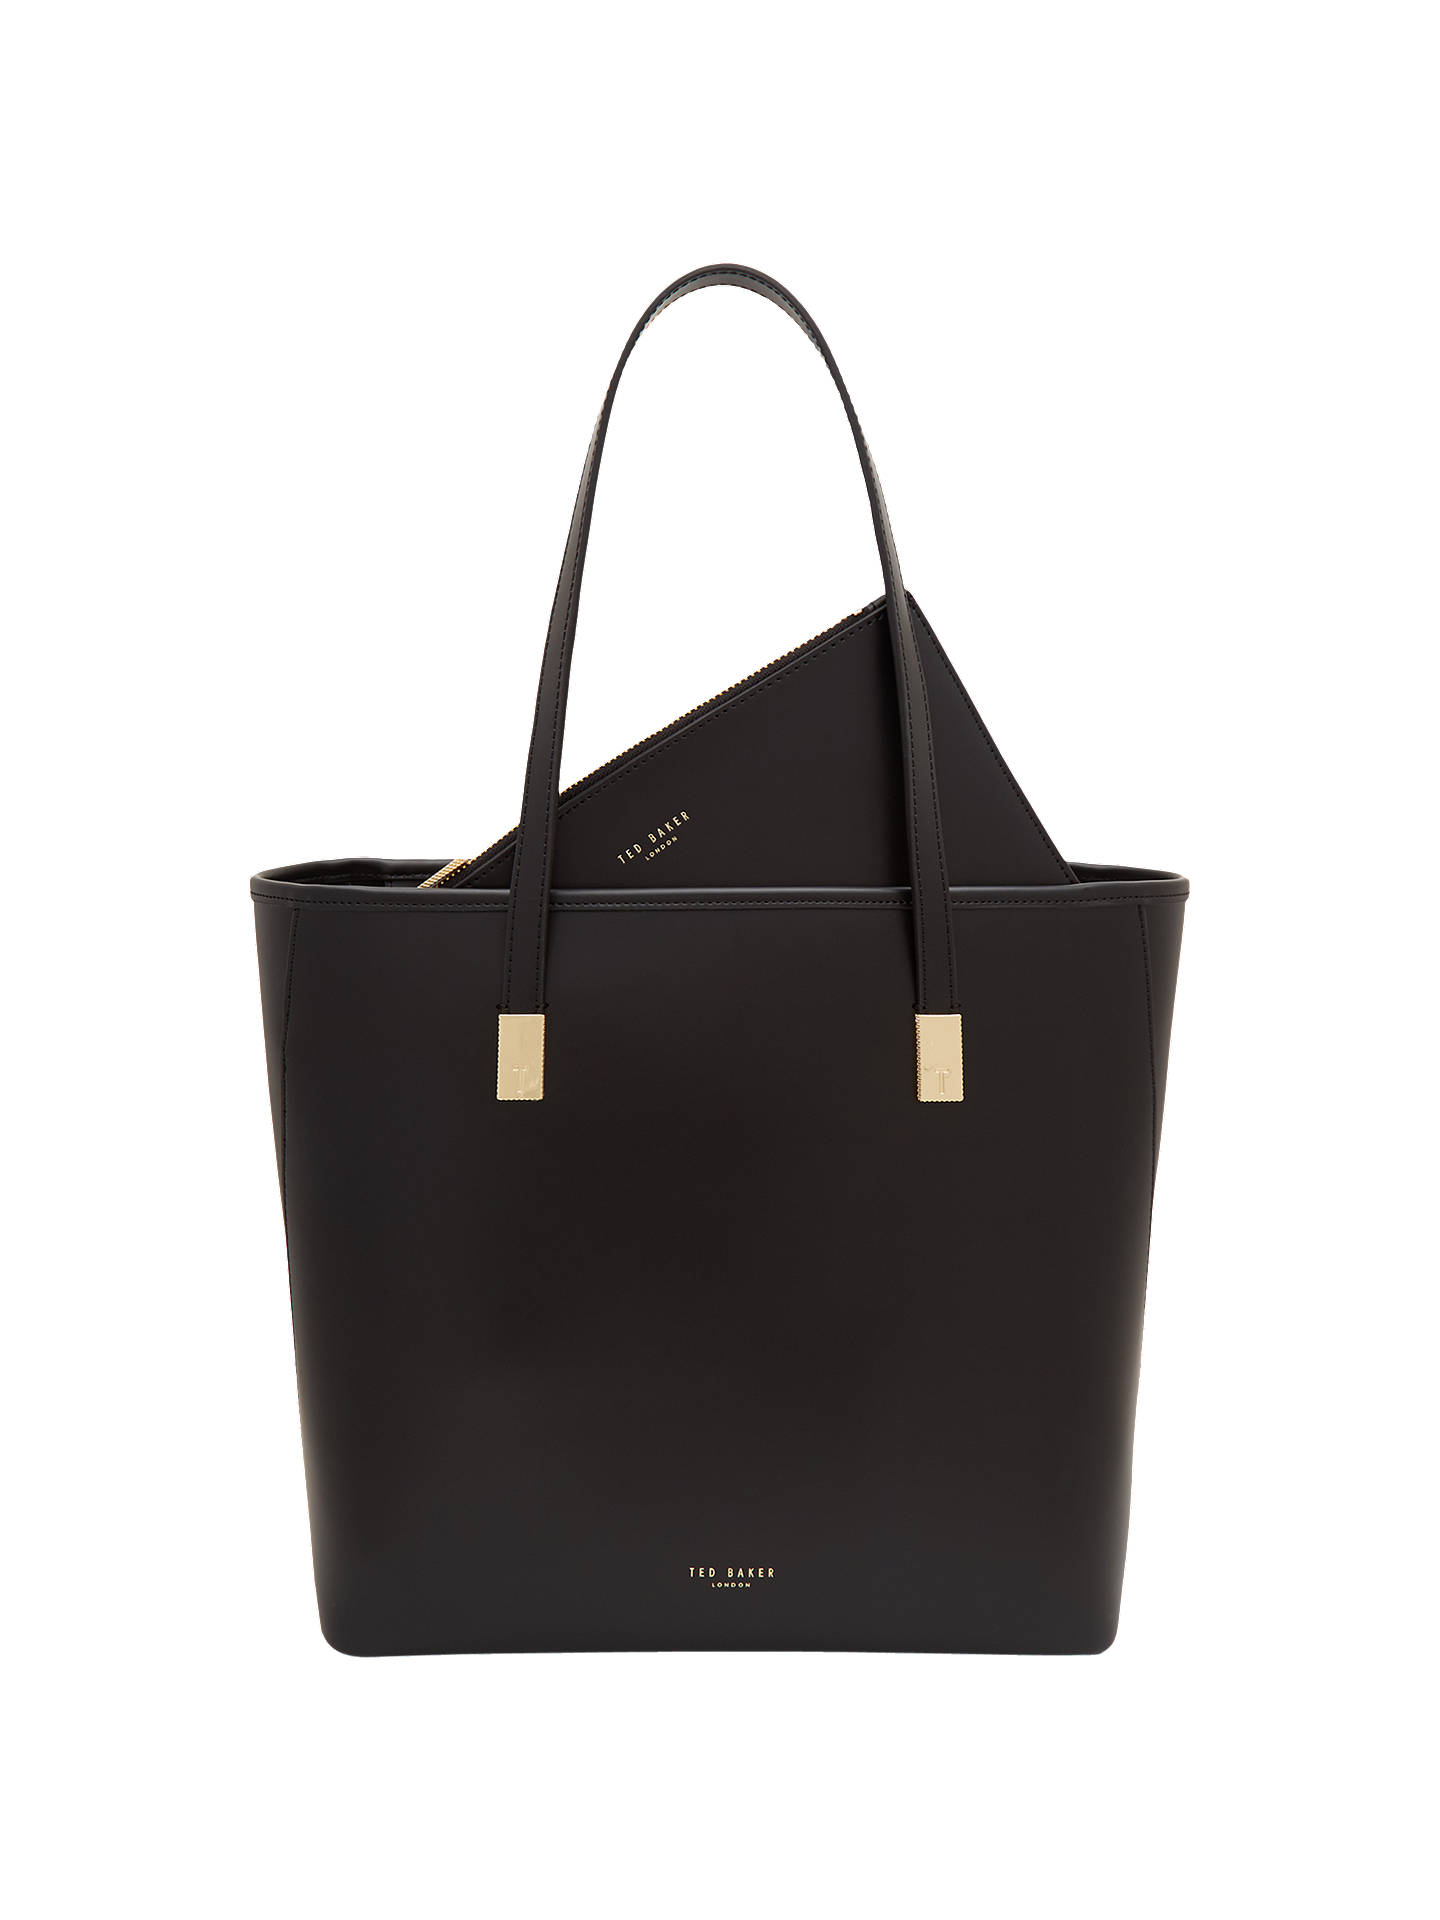 8fd6ee6b0 Ted Baker Chelsey Leather Large Shopper Bag at John Lewis   Partners